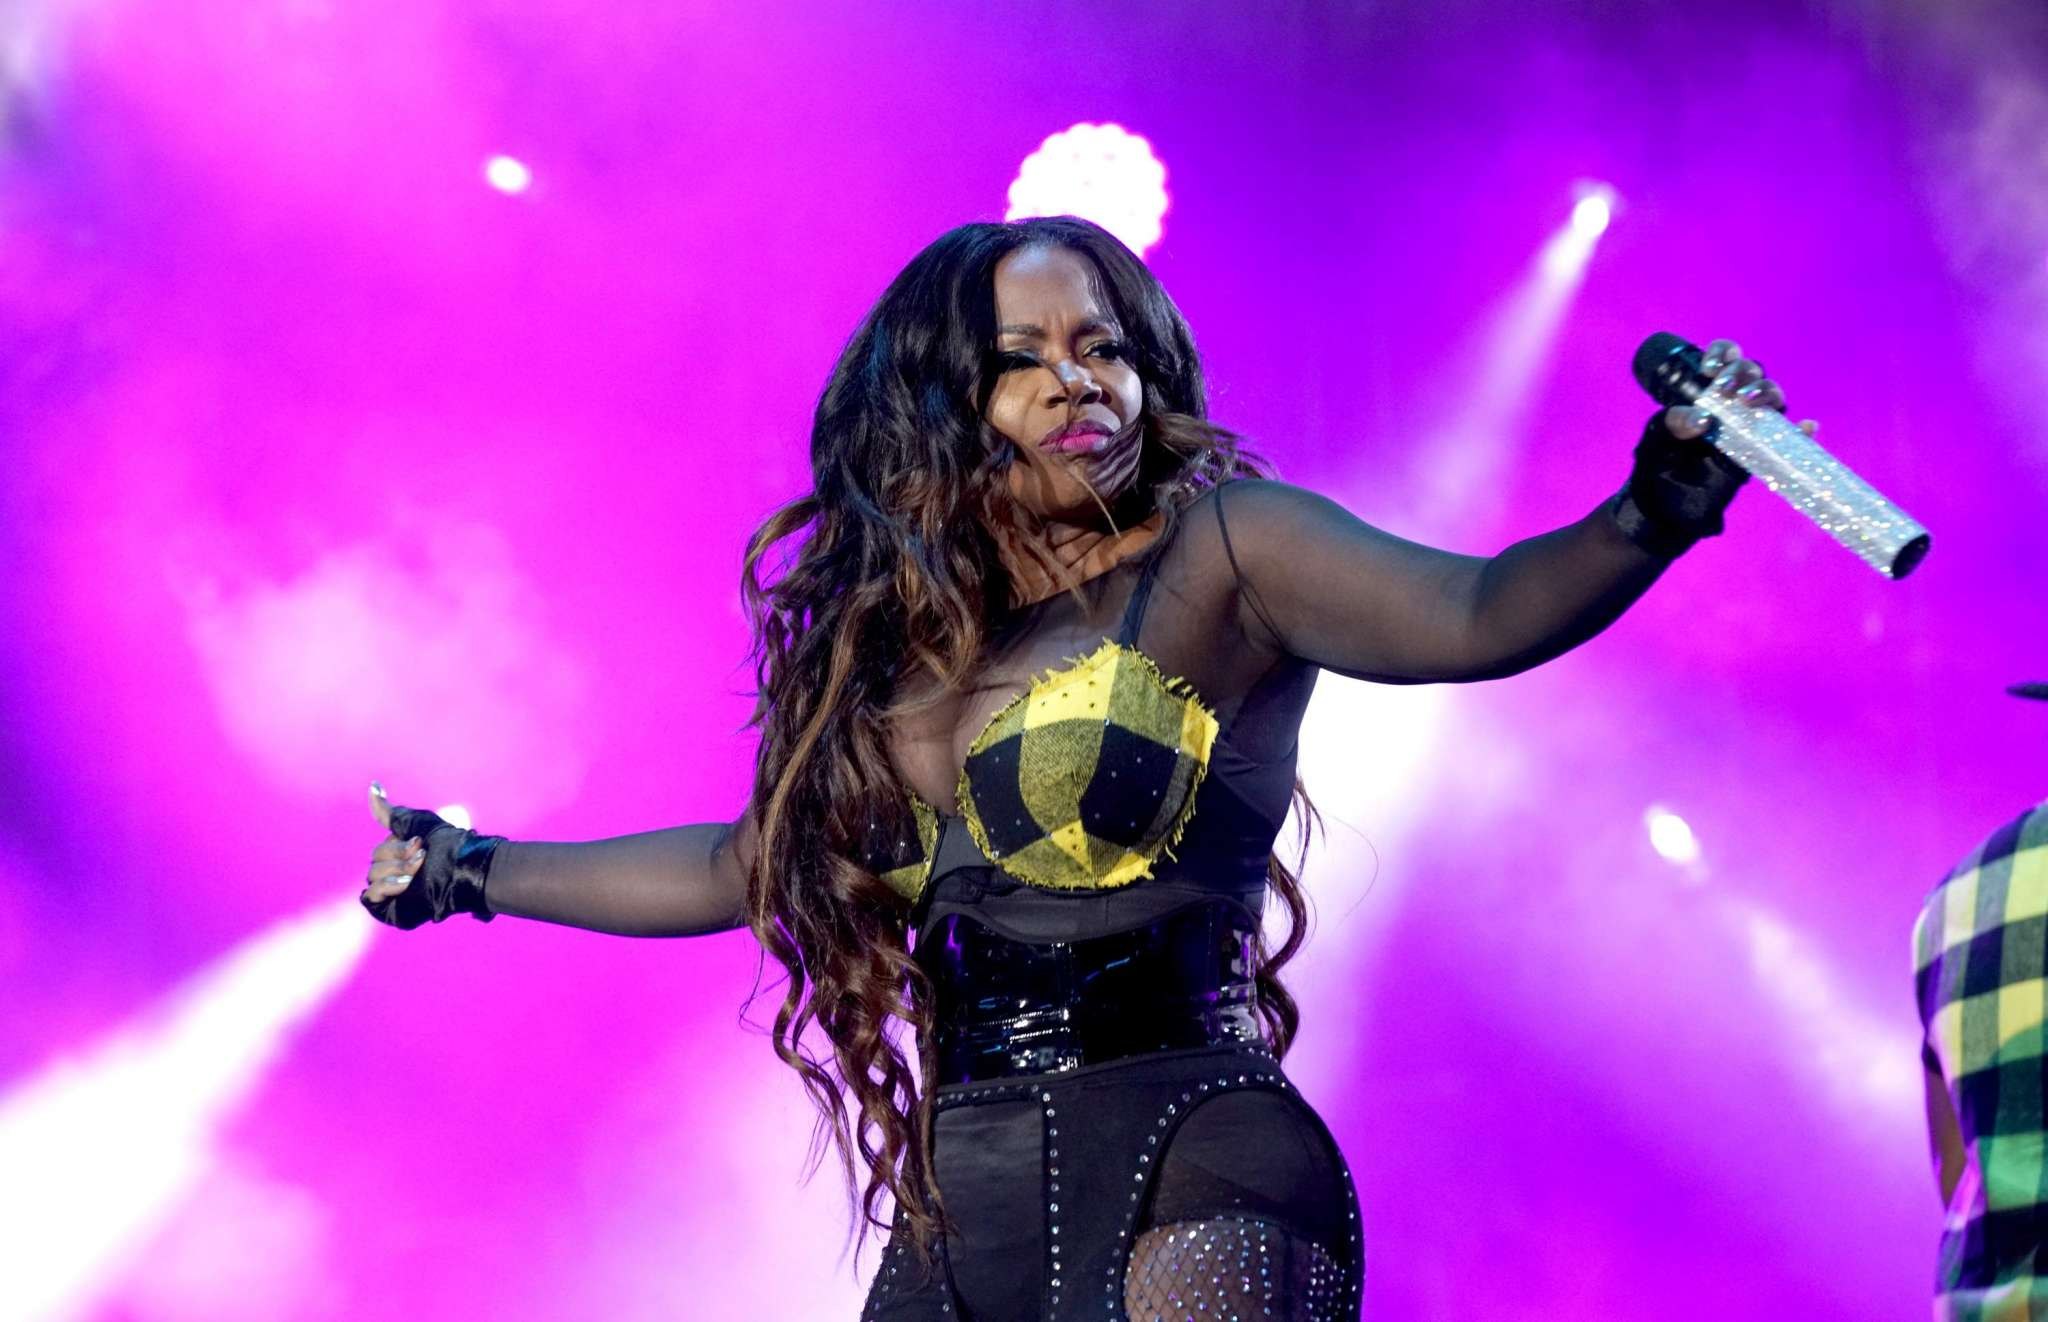 kandi-burruss-shows-fans-how-shell-be-dancing-at-the-dungeon-watch-the-juicy-video